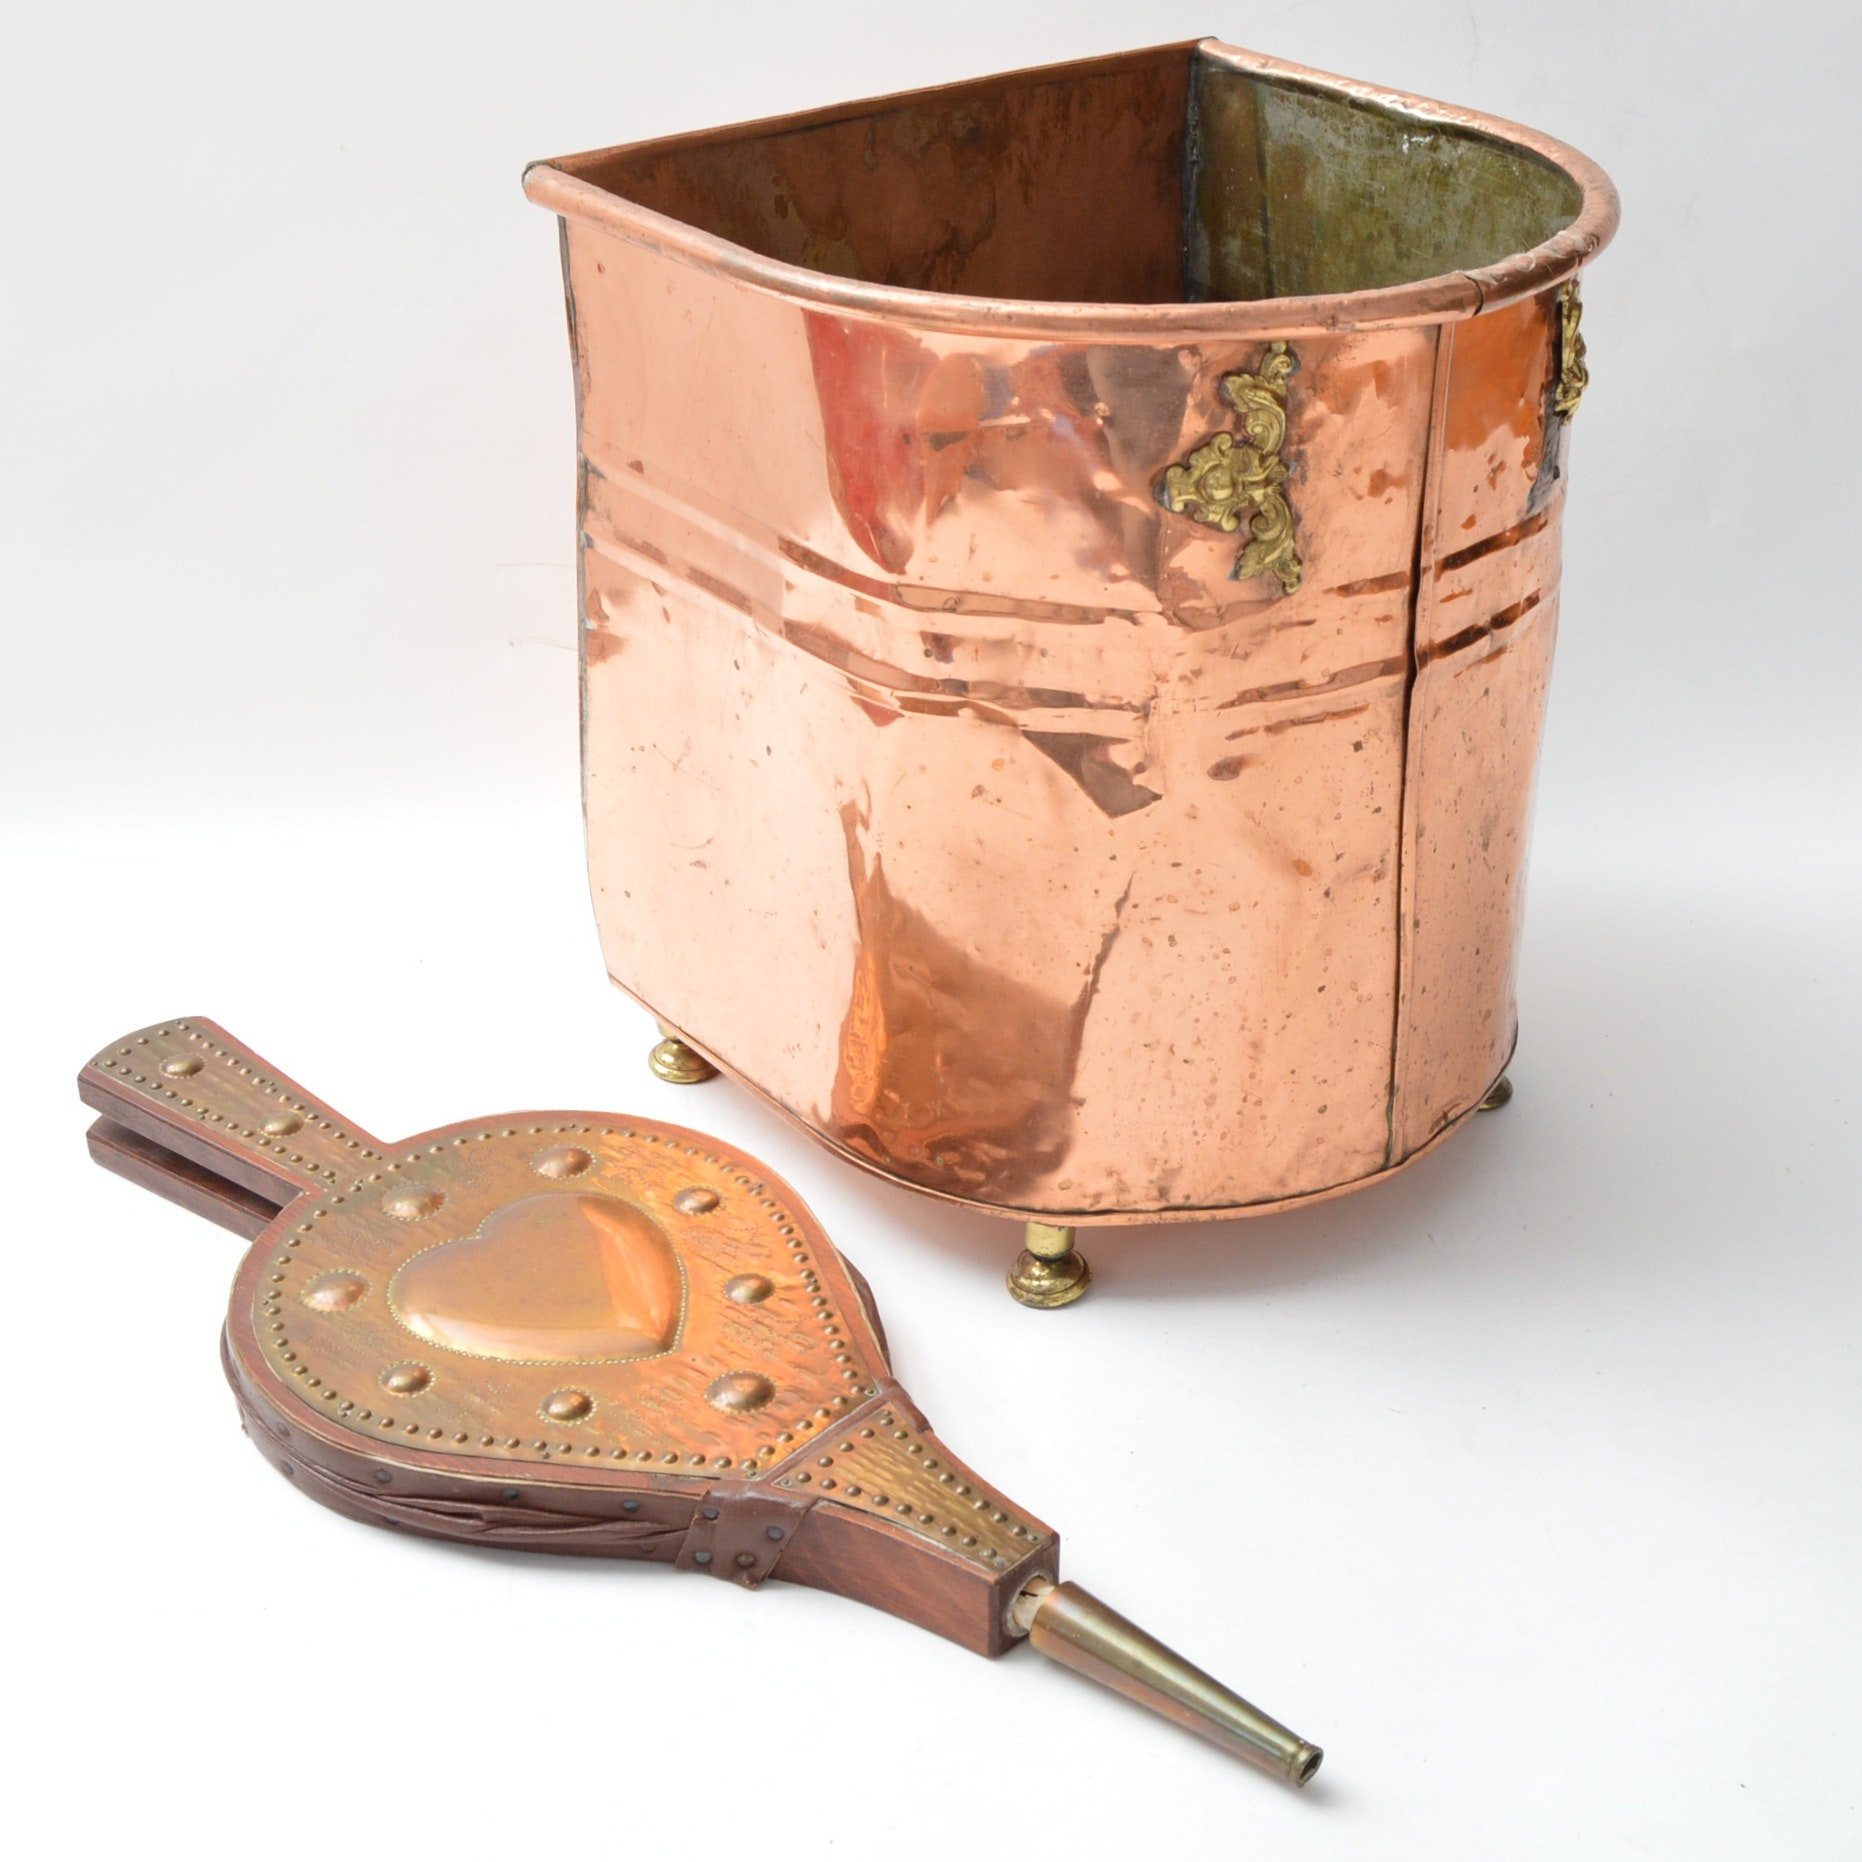 Vintage Copper Container and Wood Brass Fireplace Bellows